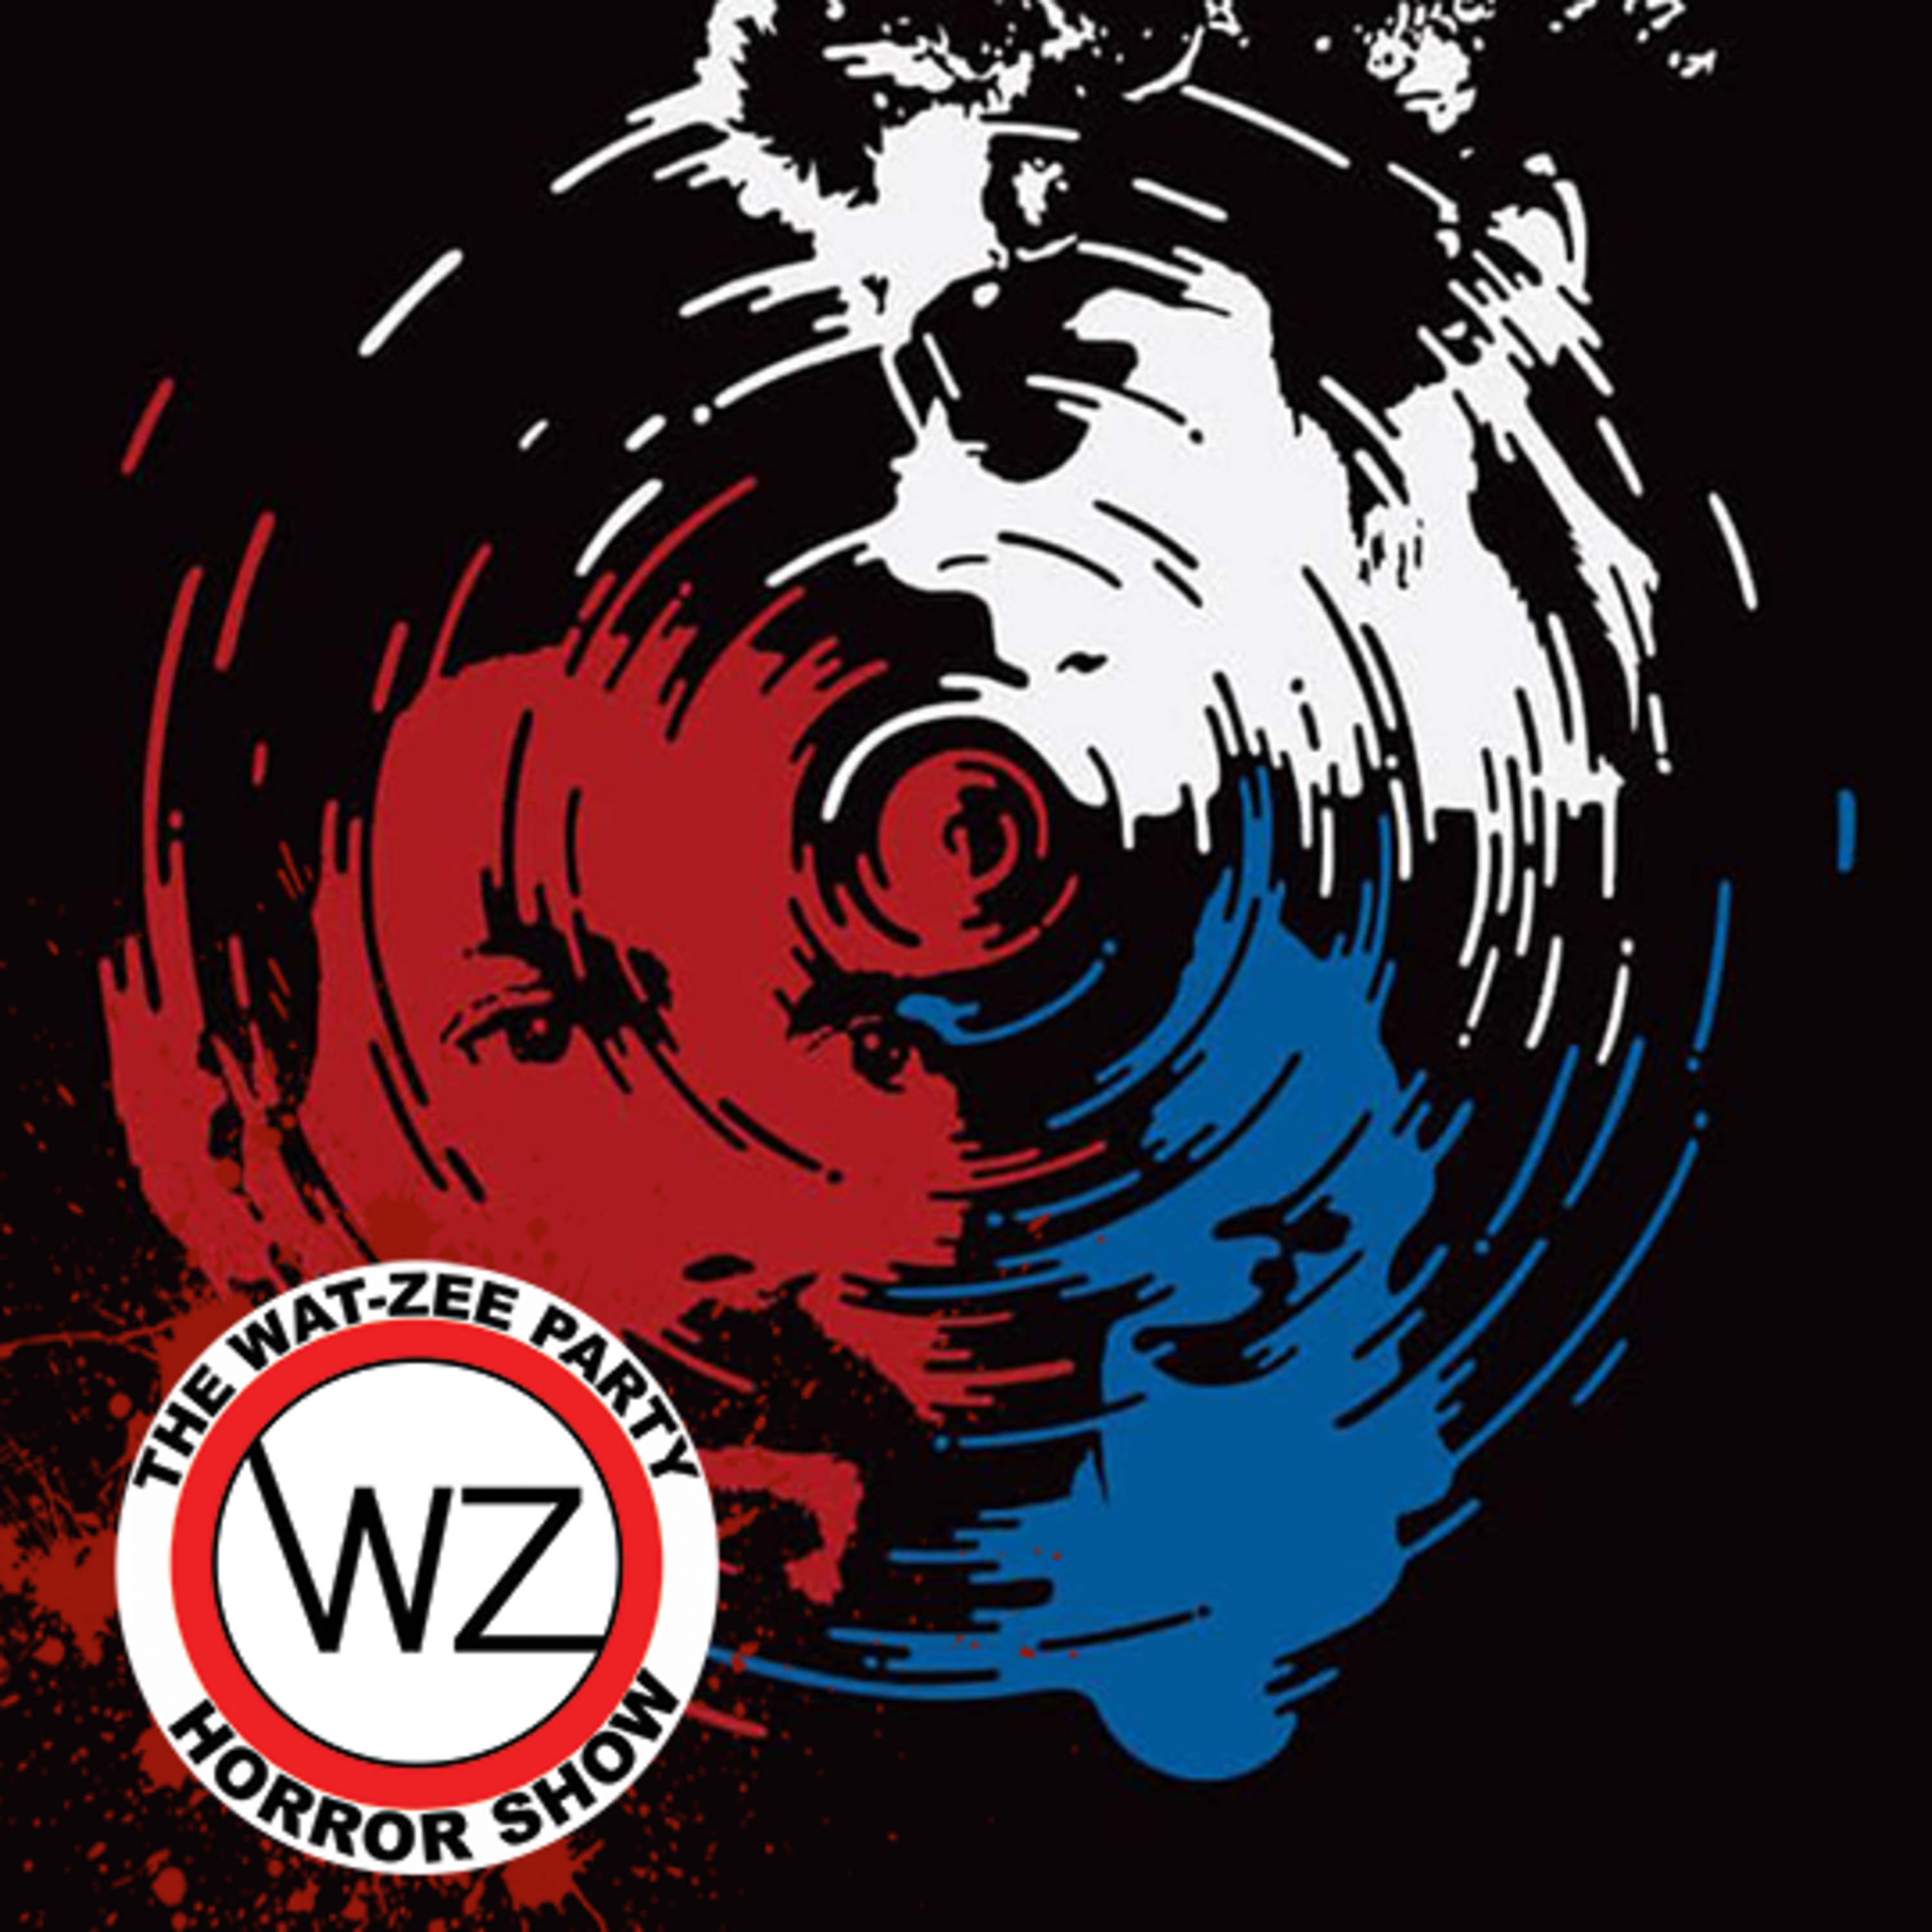 THE WAT-ZEE PARTY HORROR SHOW 009: Red White & Blue (2010)